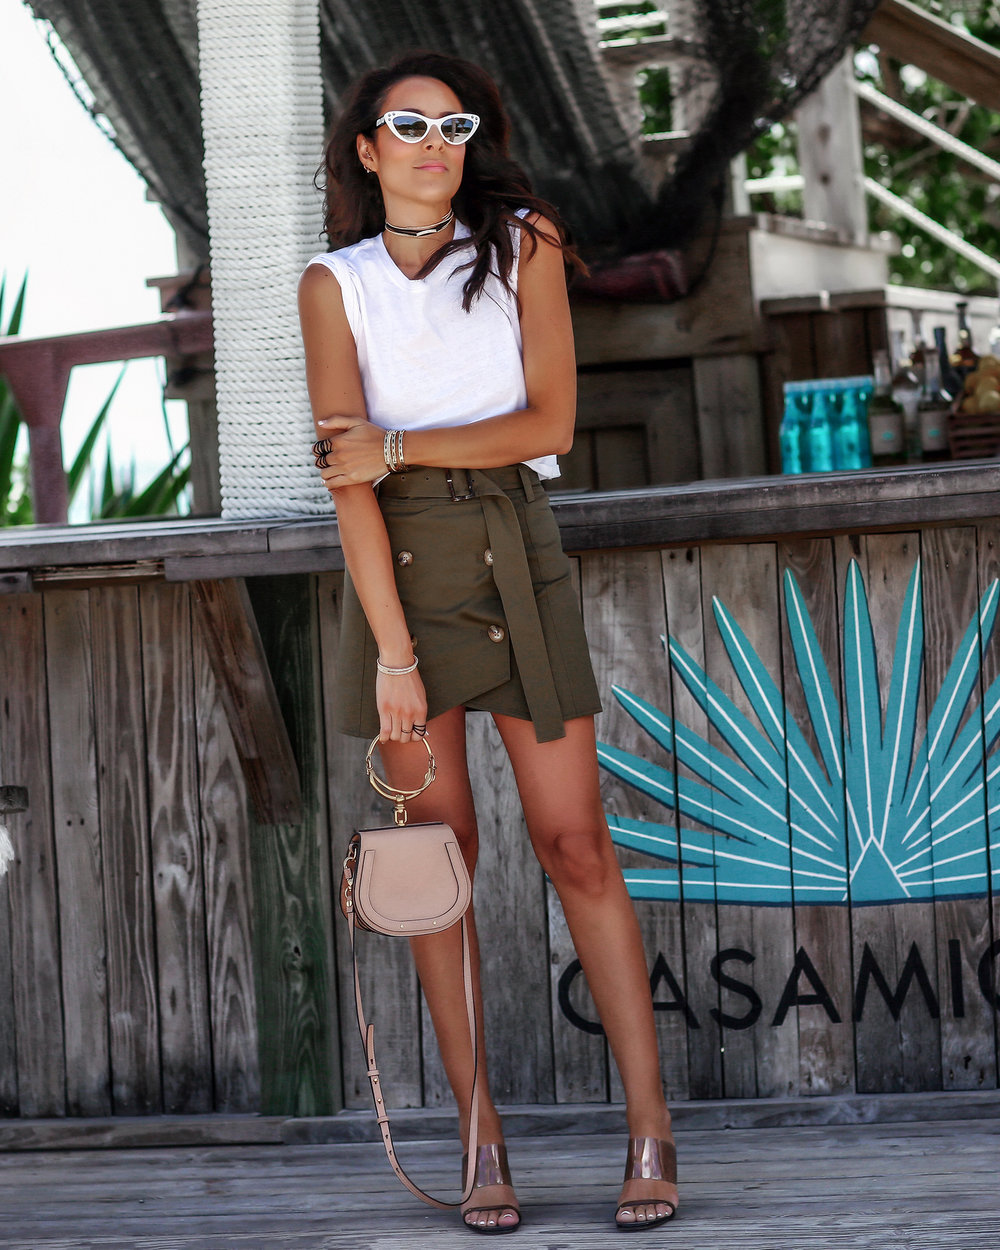 Brunette Woman in Army Green Miniskirt in the Bahamas